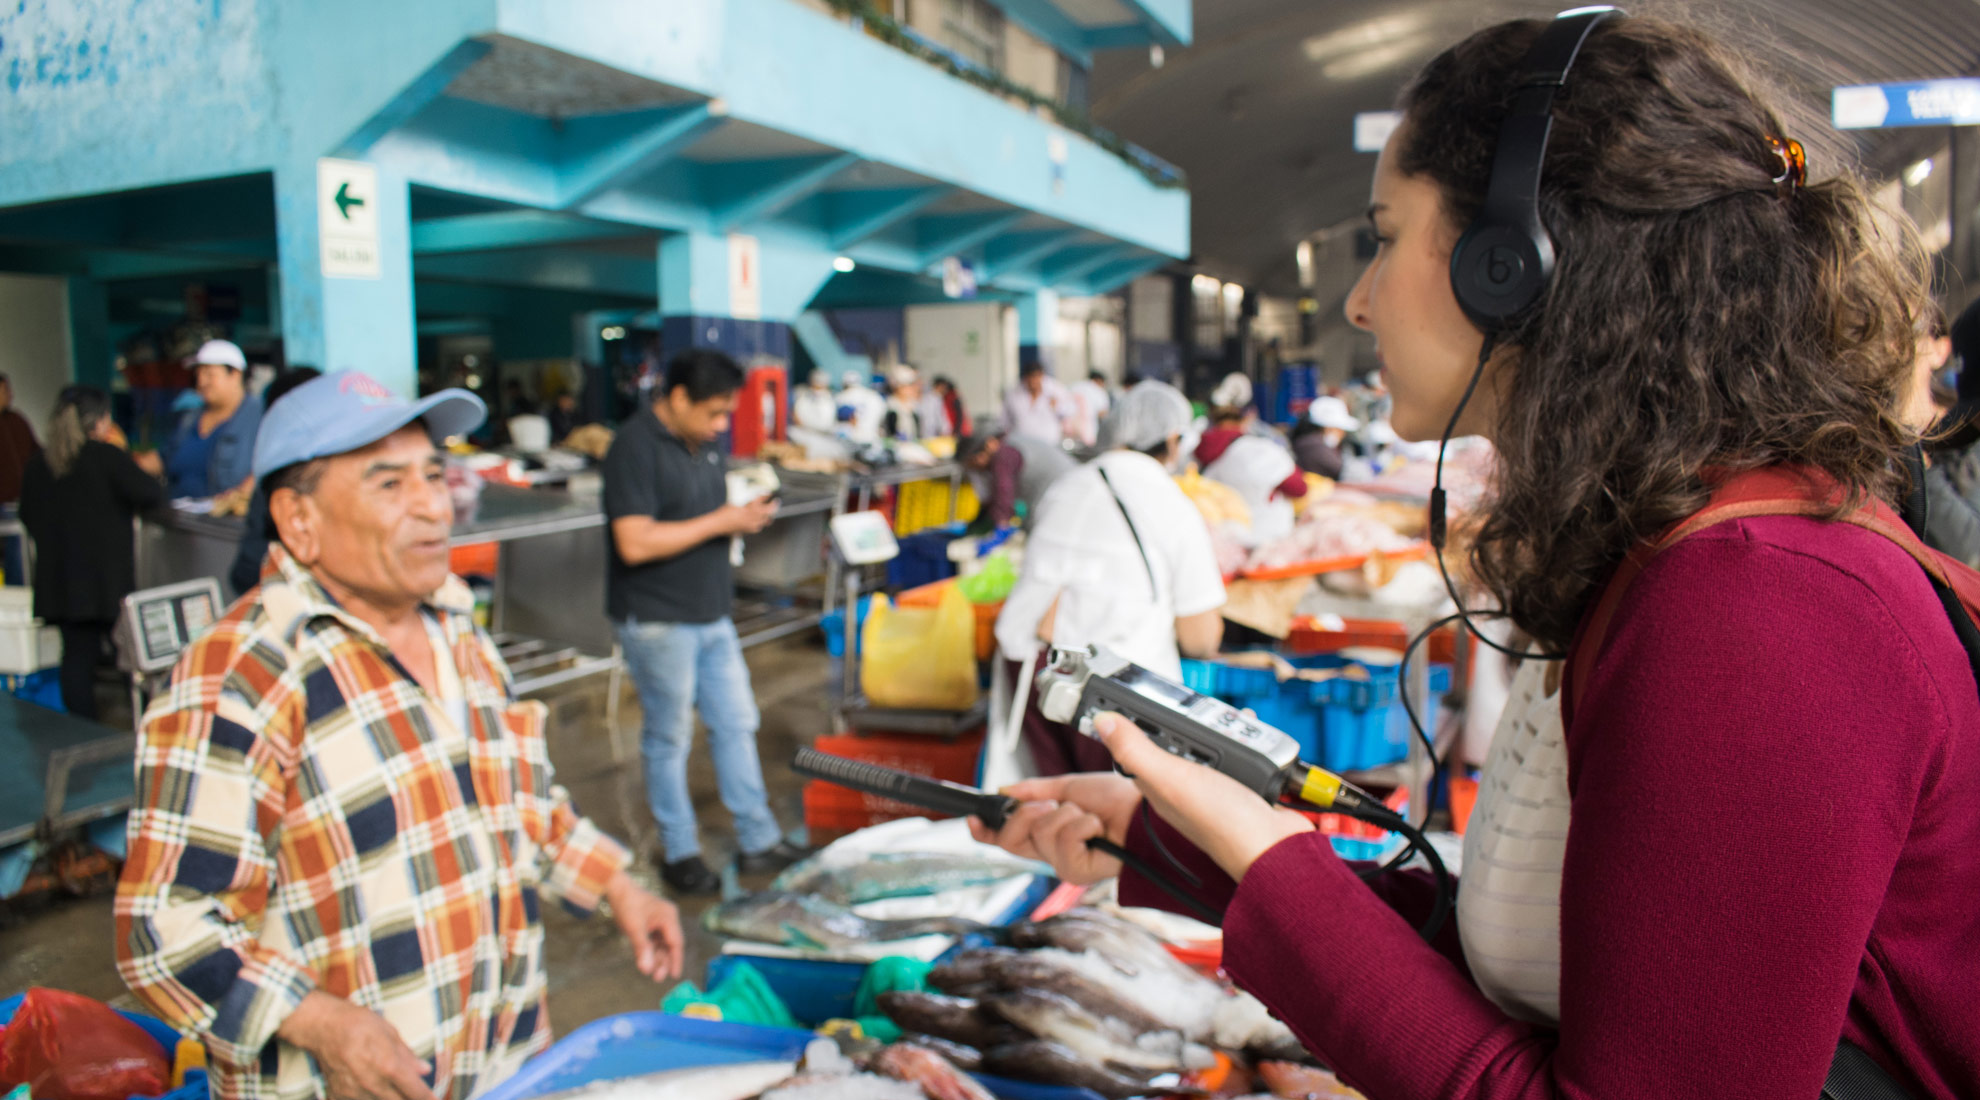 A Global Reporting Program student reporting at a fish market in Peru